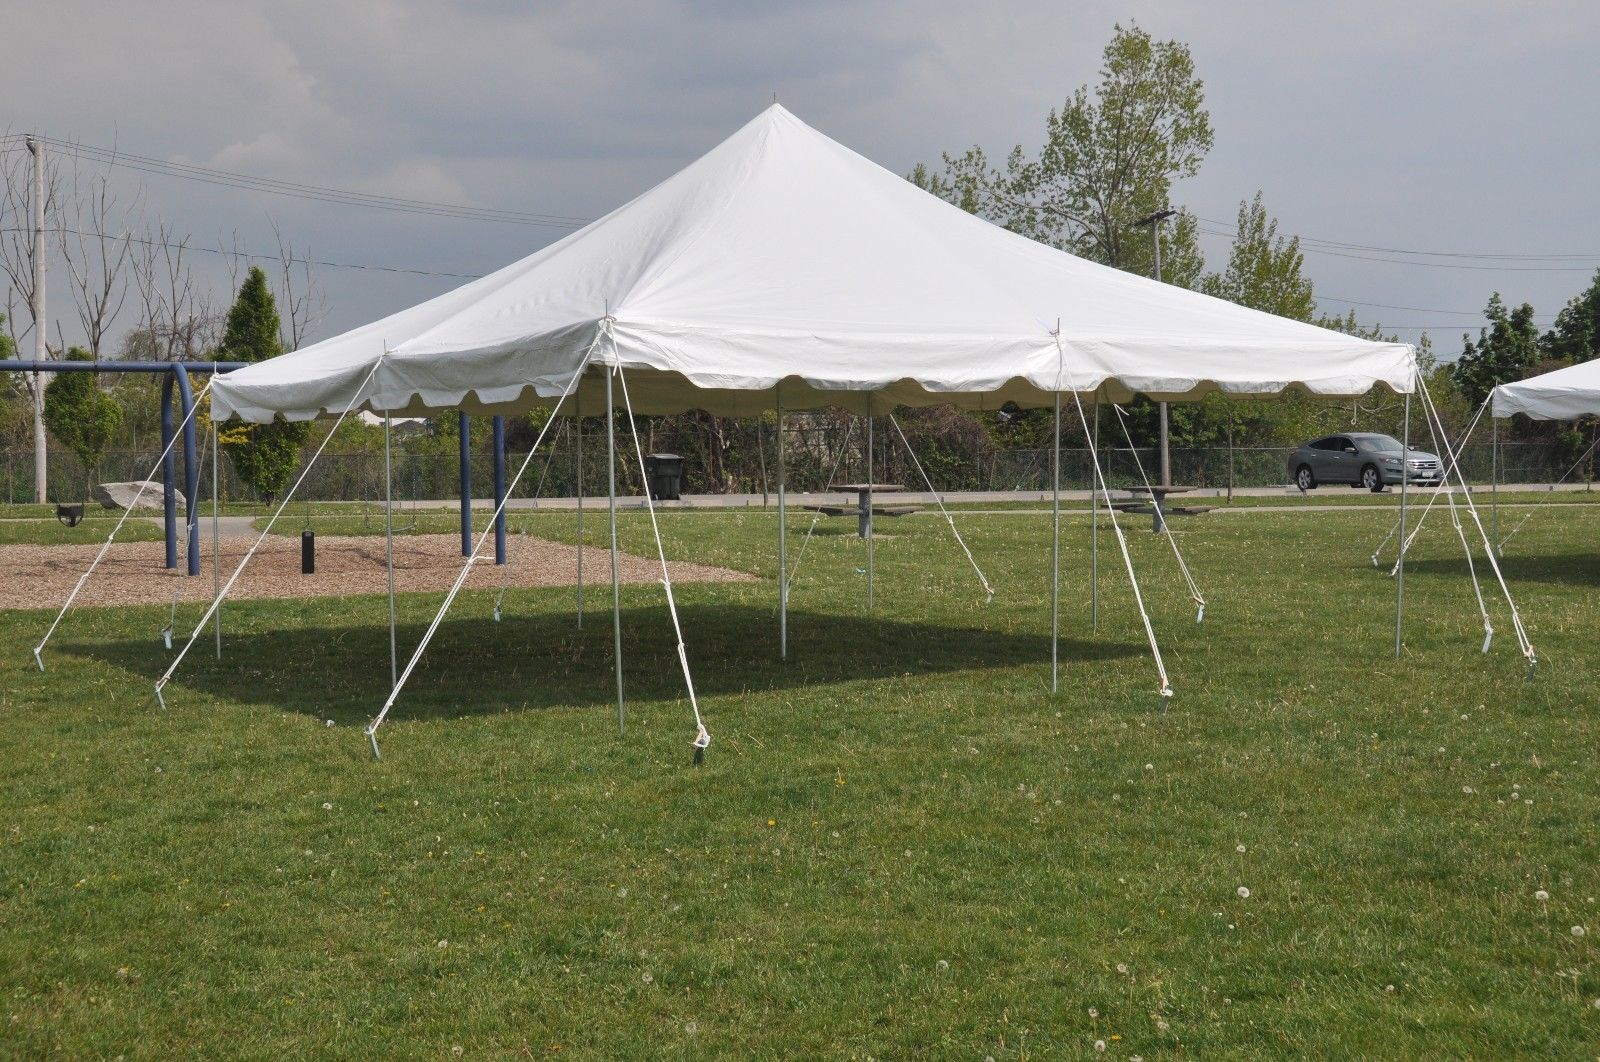 20 x 20 White Pole Tent Canopy & 20 x 20 Commercial Grade Party Tent